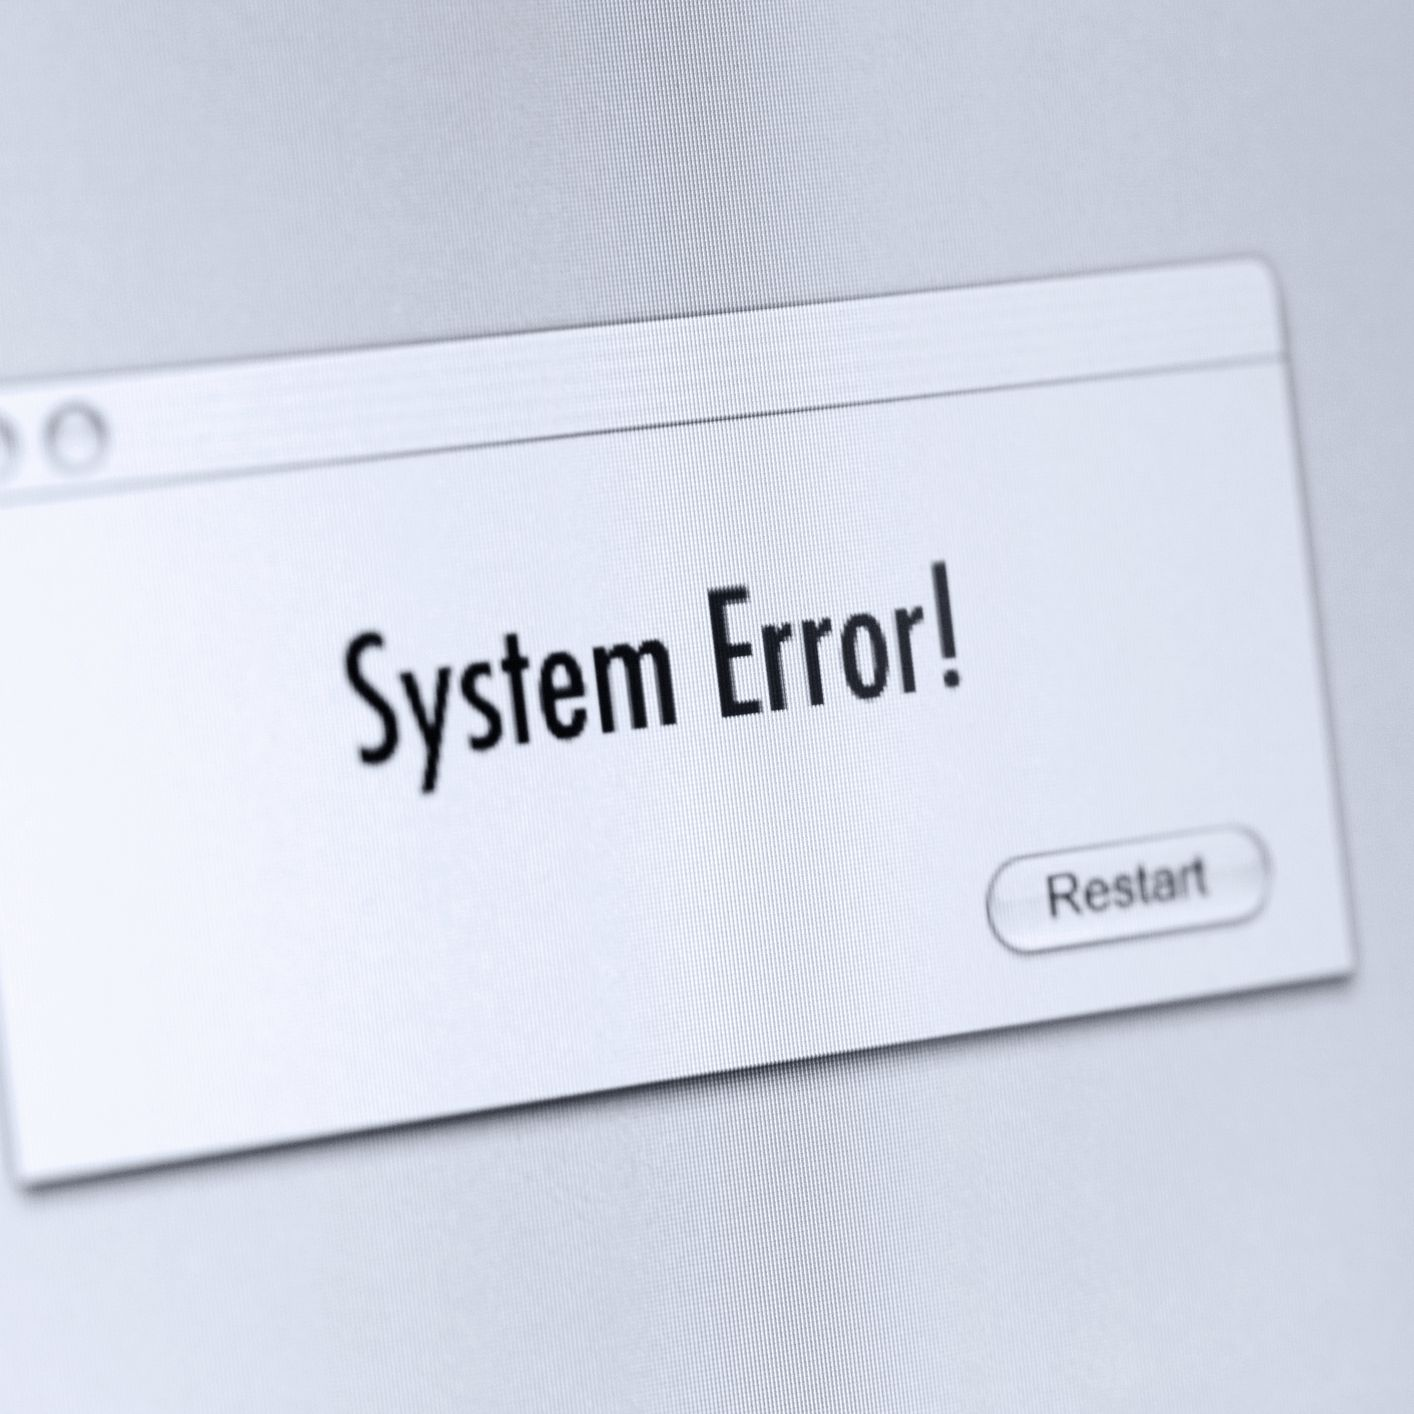 System Error Codes 1 to 15841 & What Each One Means